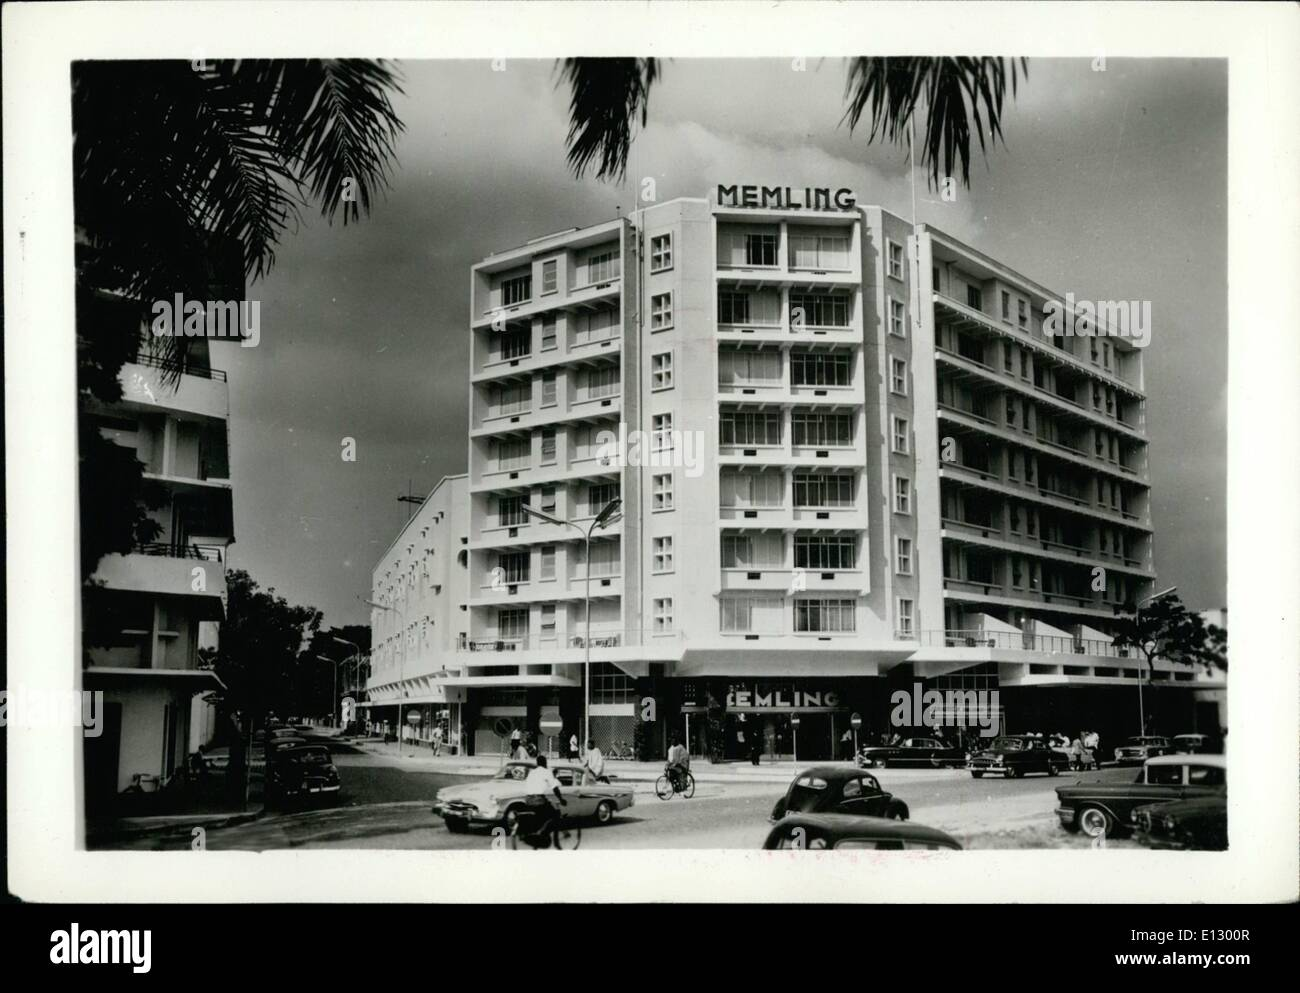 Feb. 25, 2012 - Zaire - Kinshasa: A hotel in the commercial center. - Stock Image